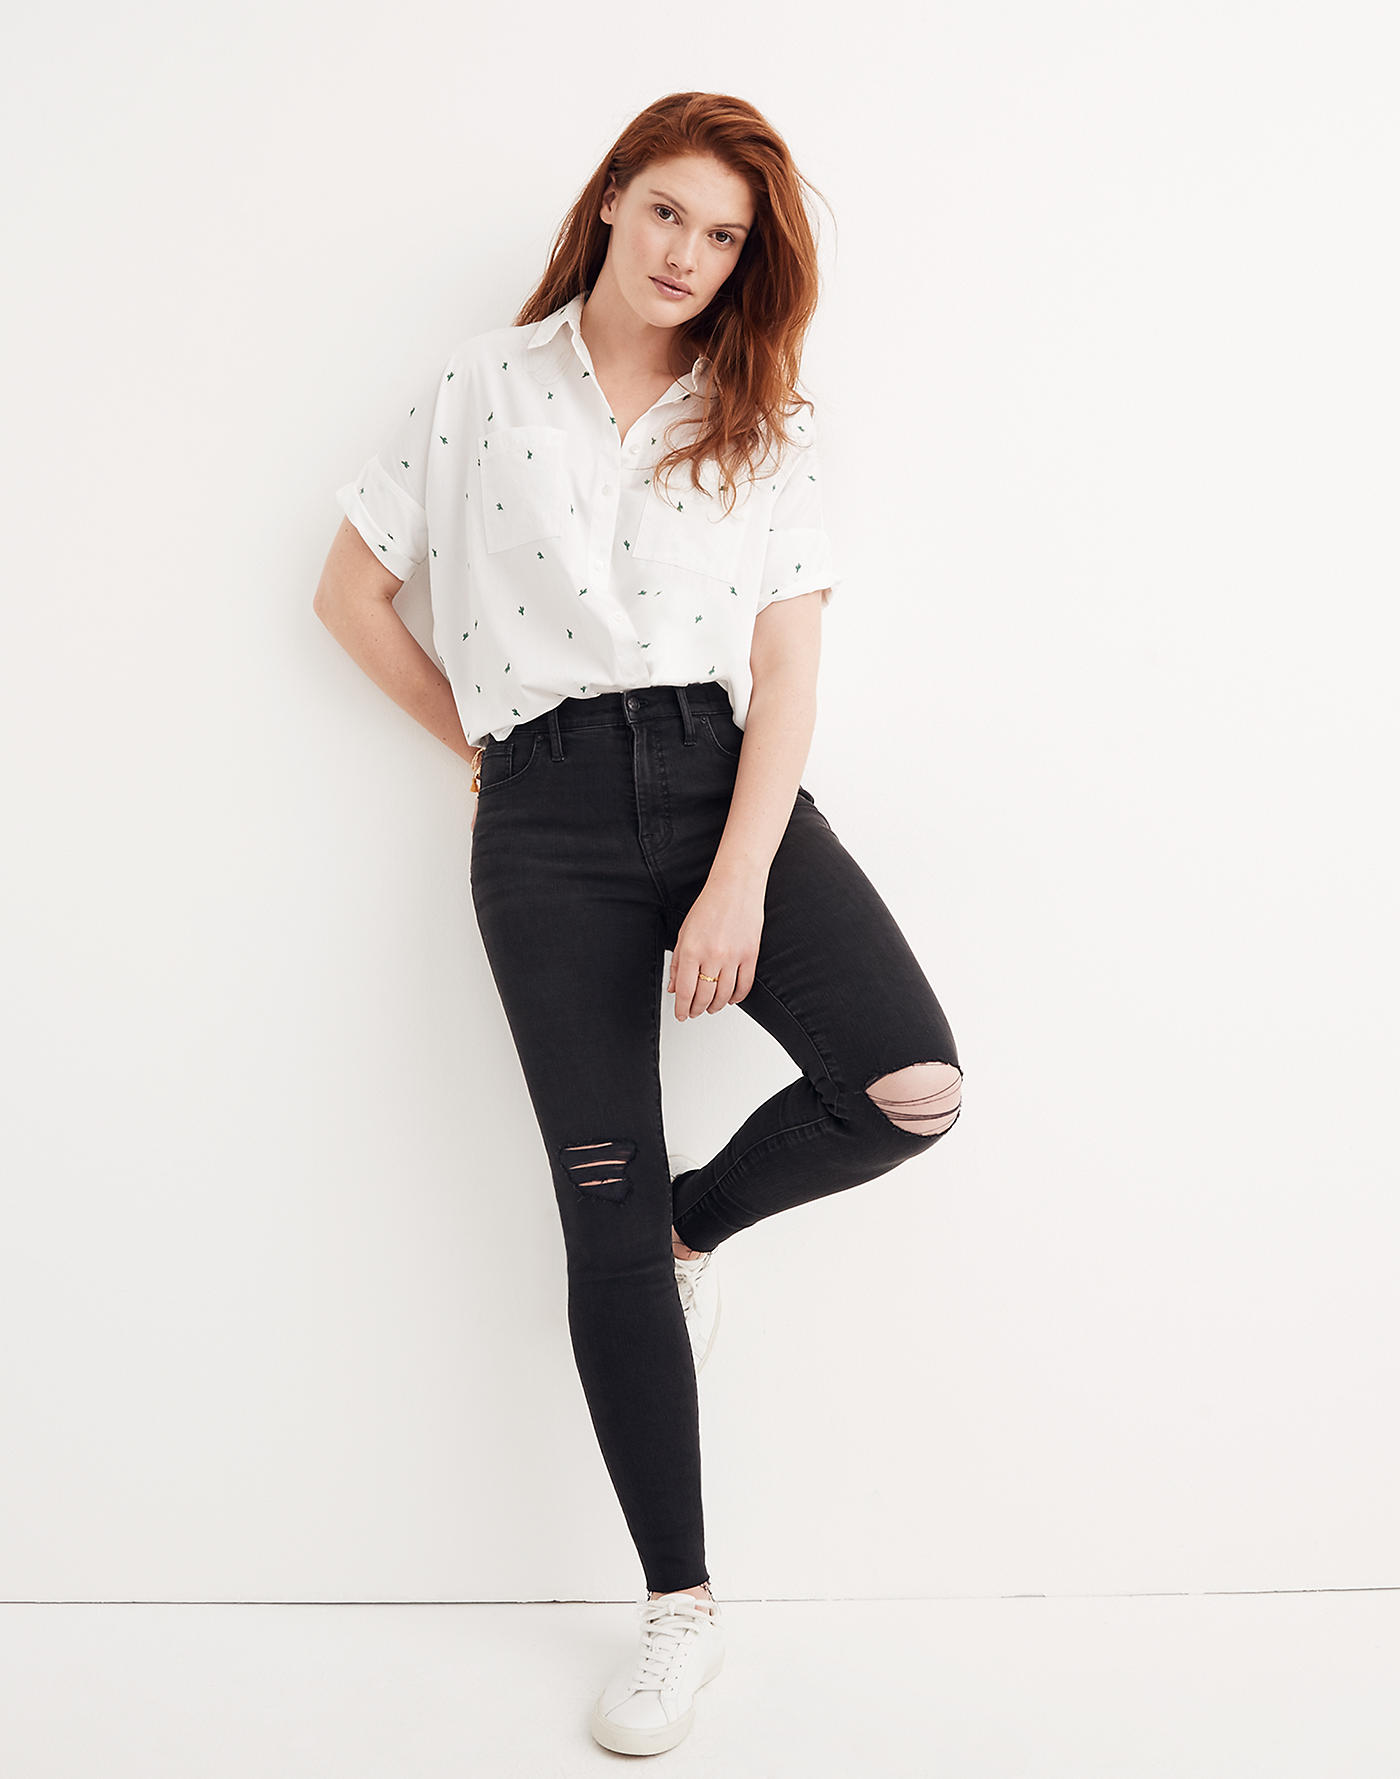 Madewell 9 Mid-Rise Skinny Jeans in Black Sea